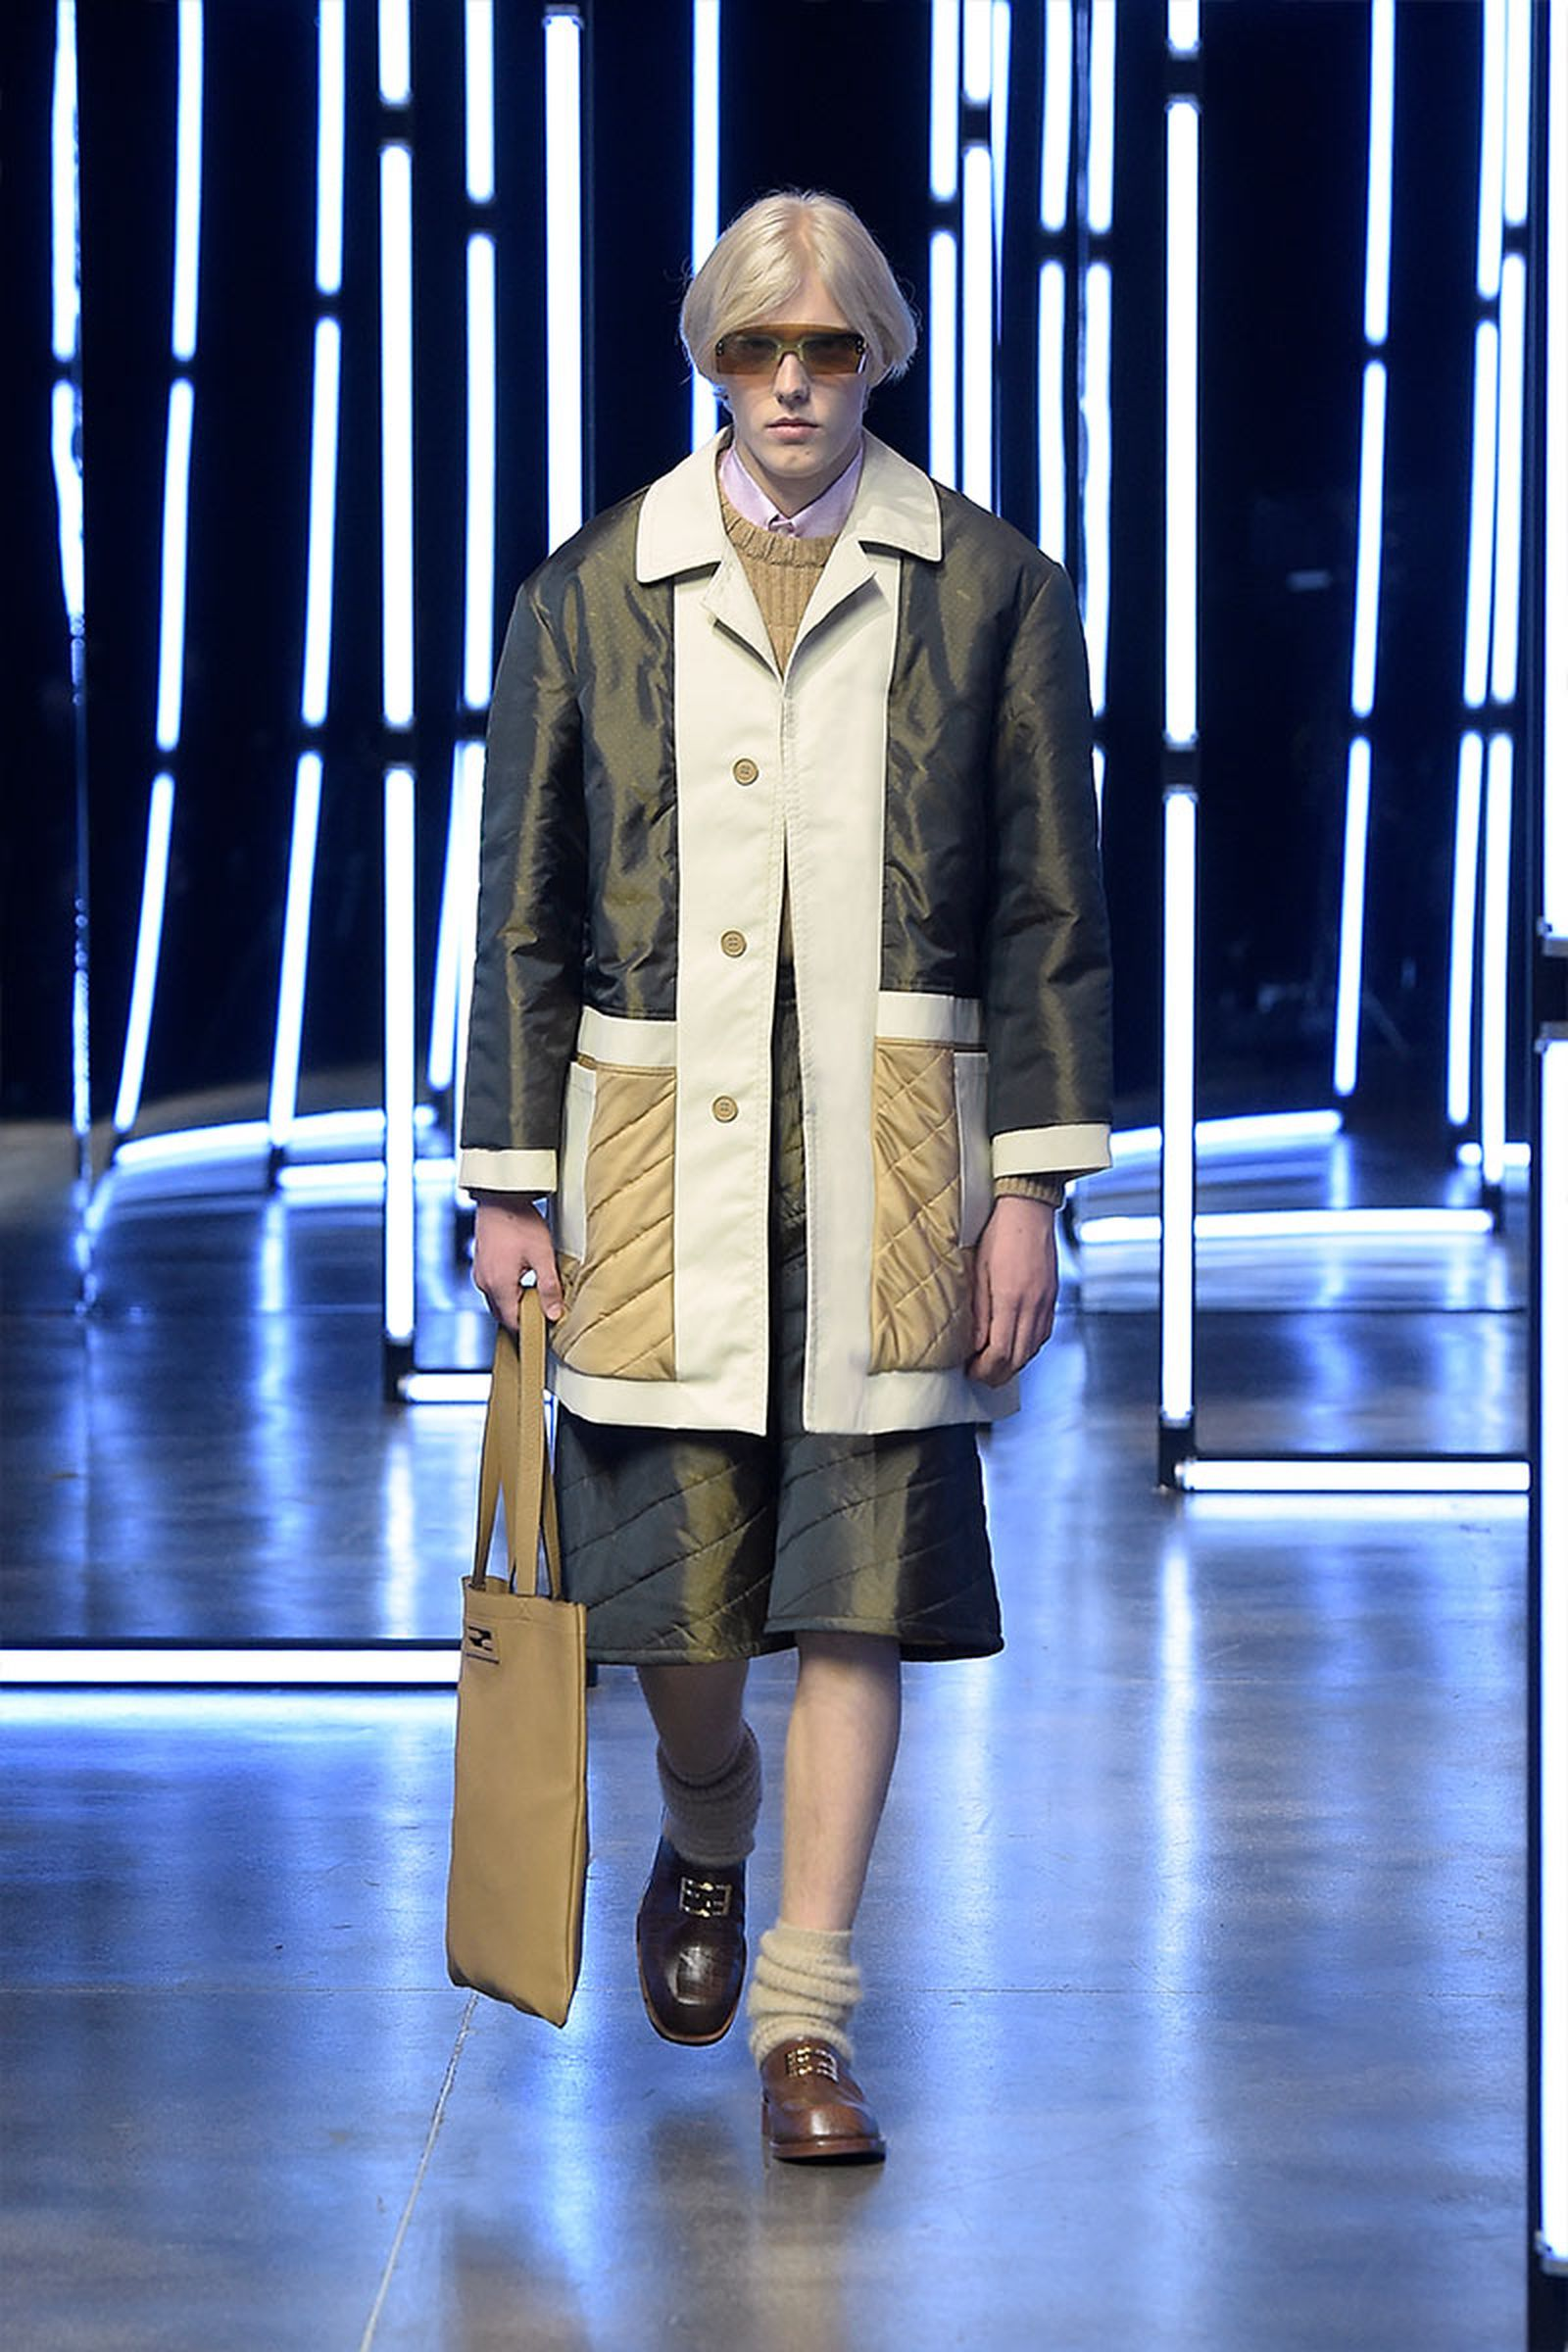 fendi-fall-mens-collection-2021-45